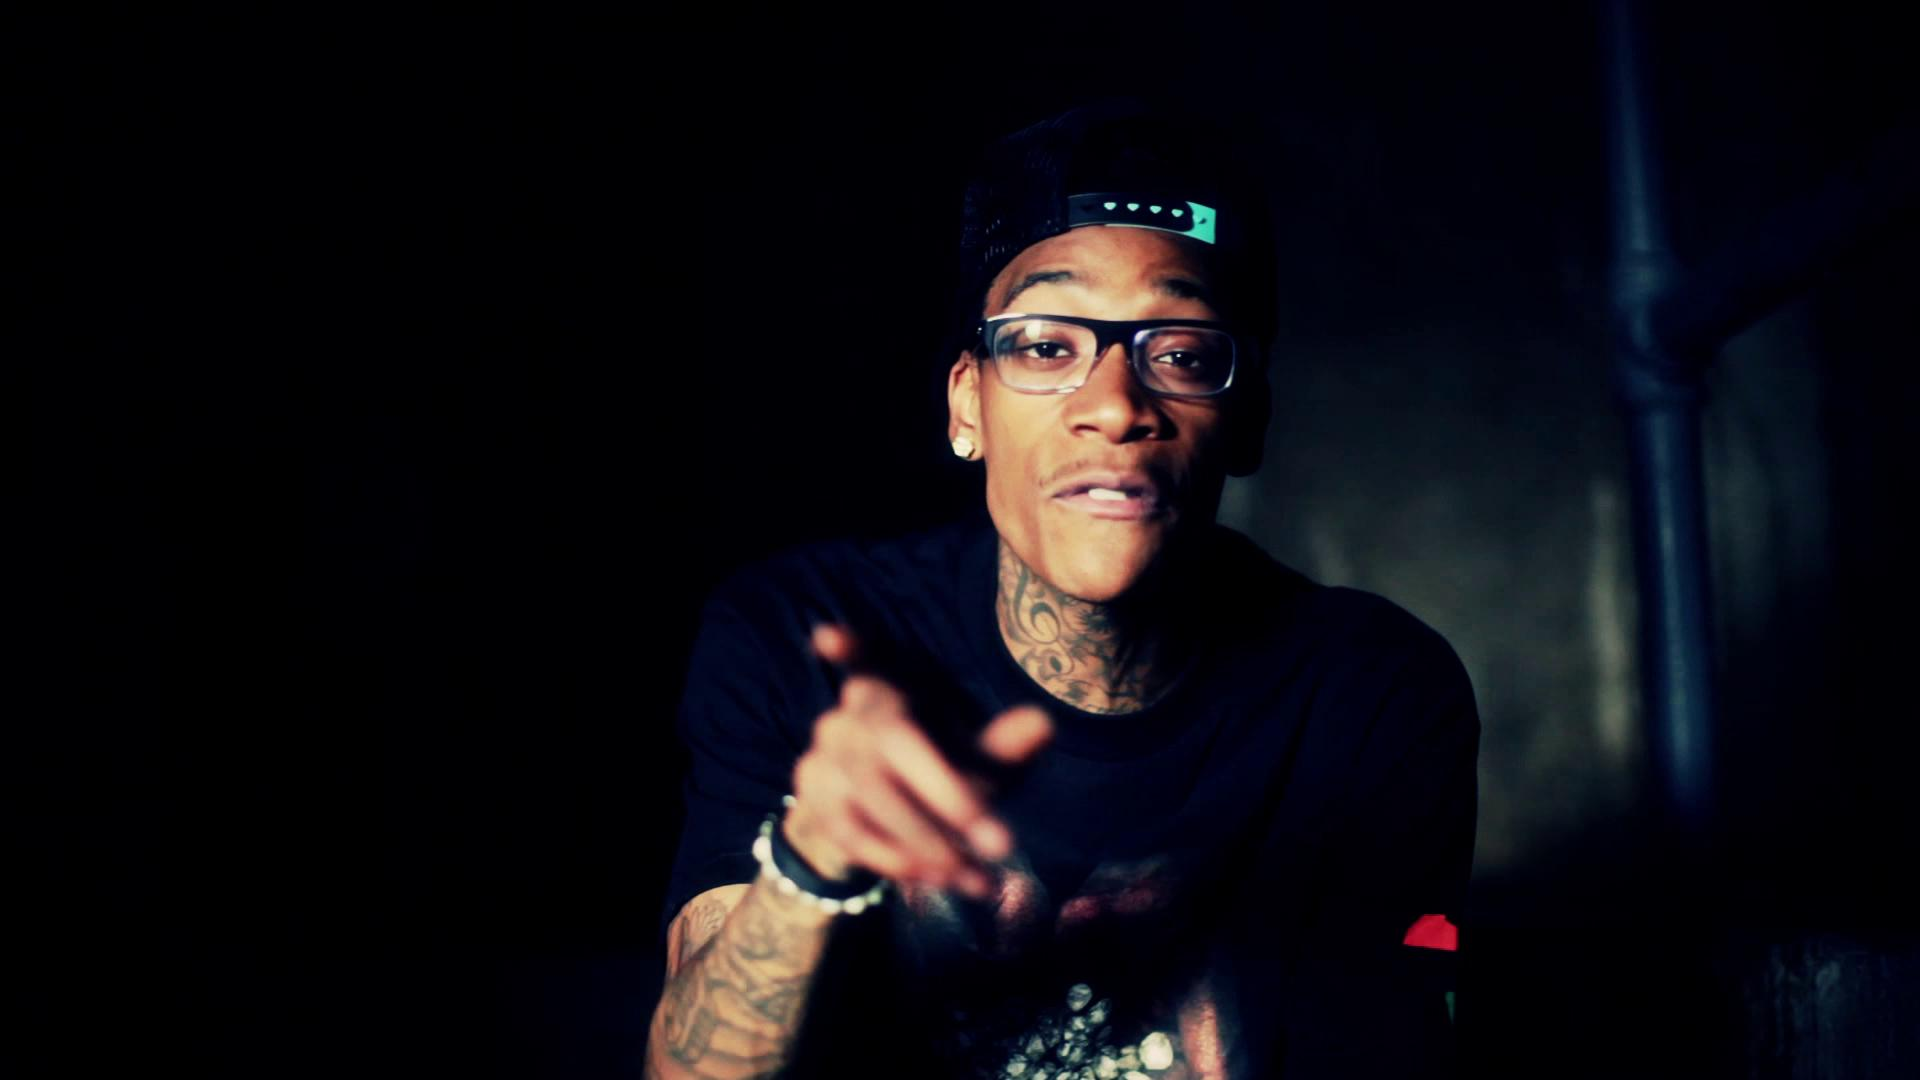 Wiz Khalifa HD Wallpapers 2016 - Wallpaper Cave